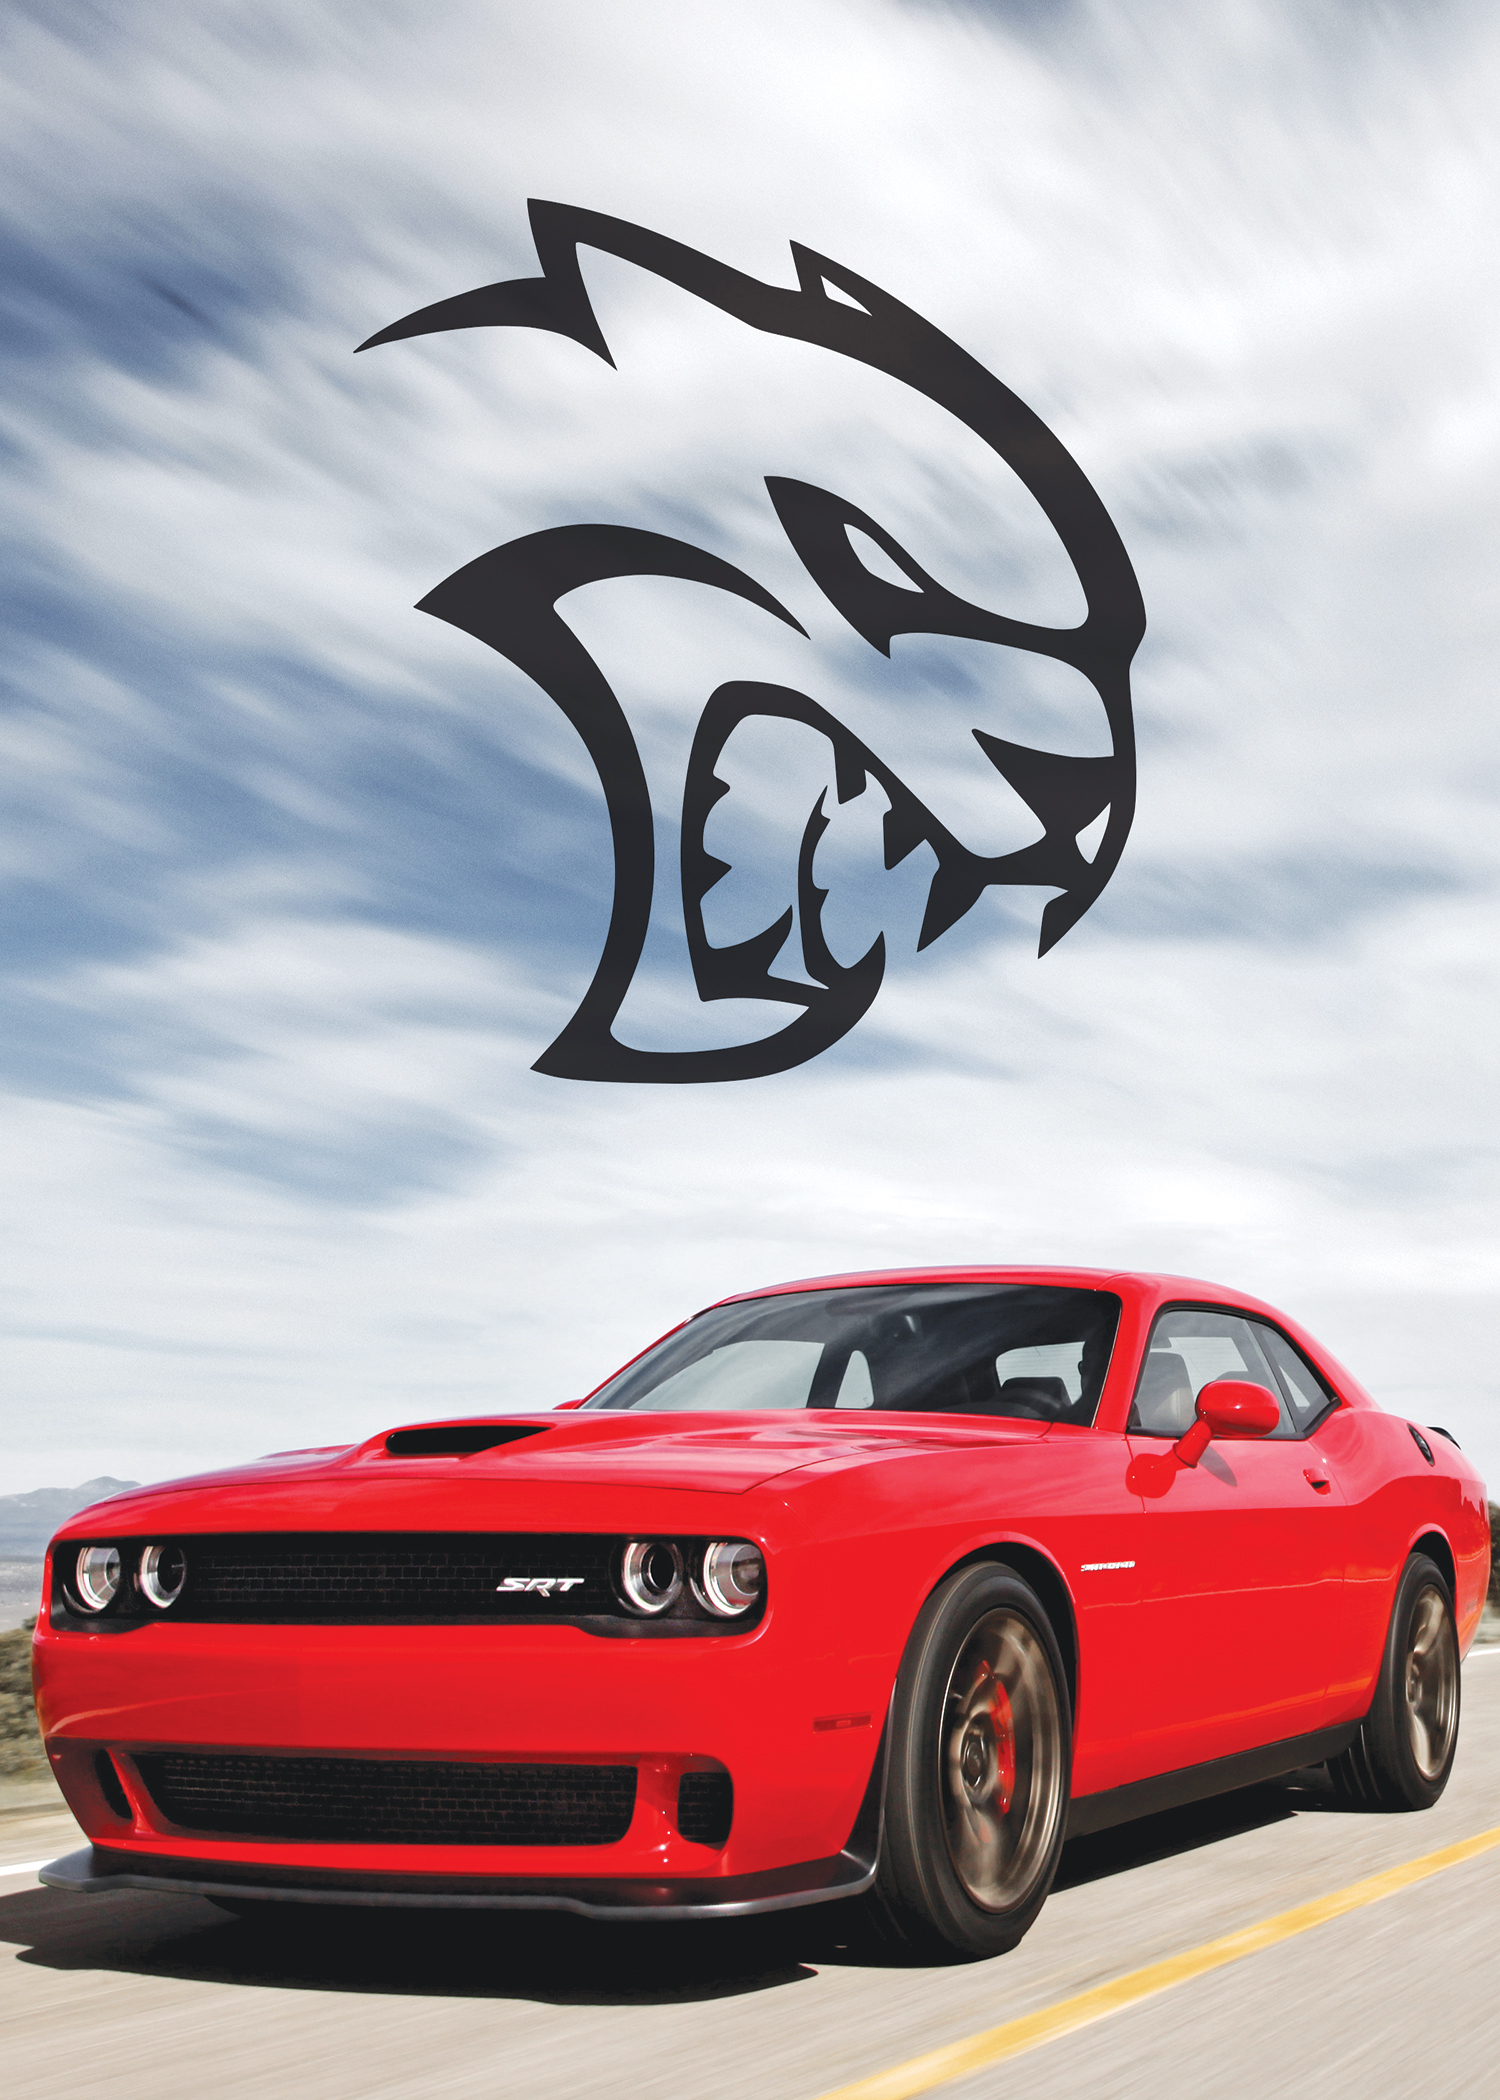 Will the Hellcat-powered Challenger become the first Mopar to hit 200 mph since the 426 Hemi–powered Charger Daytona? It's certainly a possibility. Gotta dig that Hellcat logo.